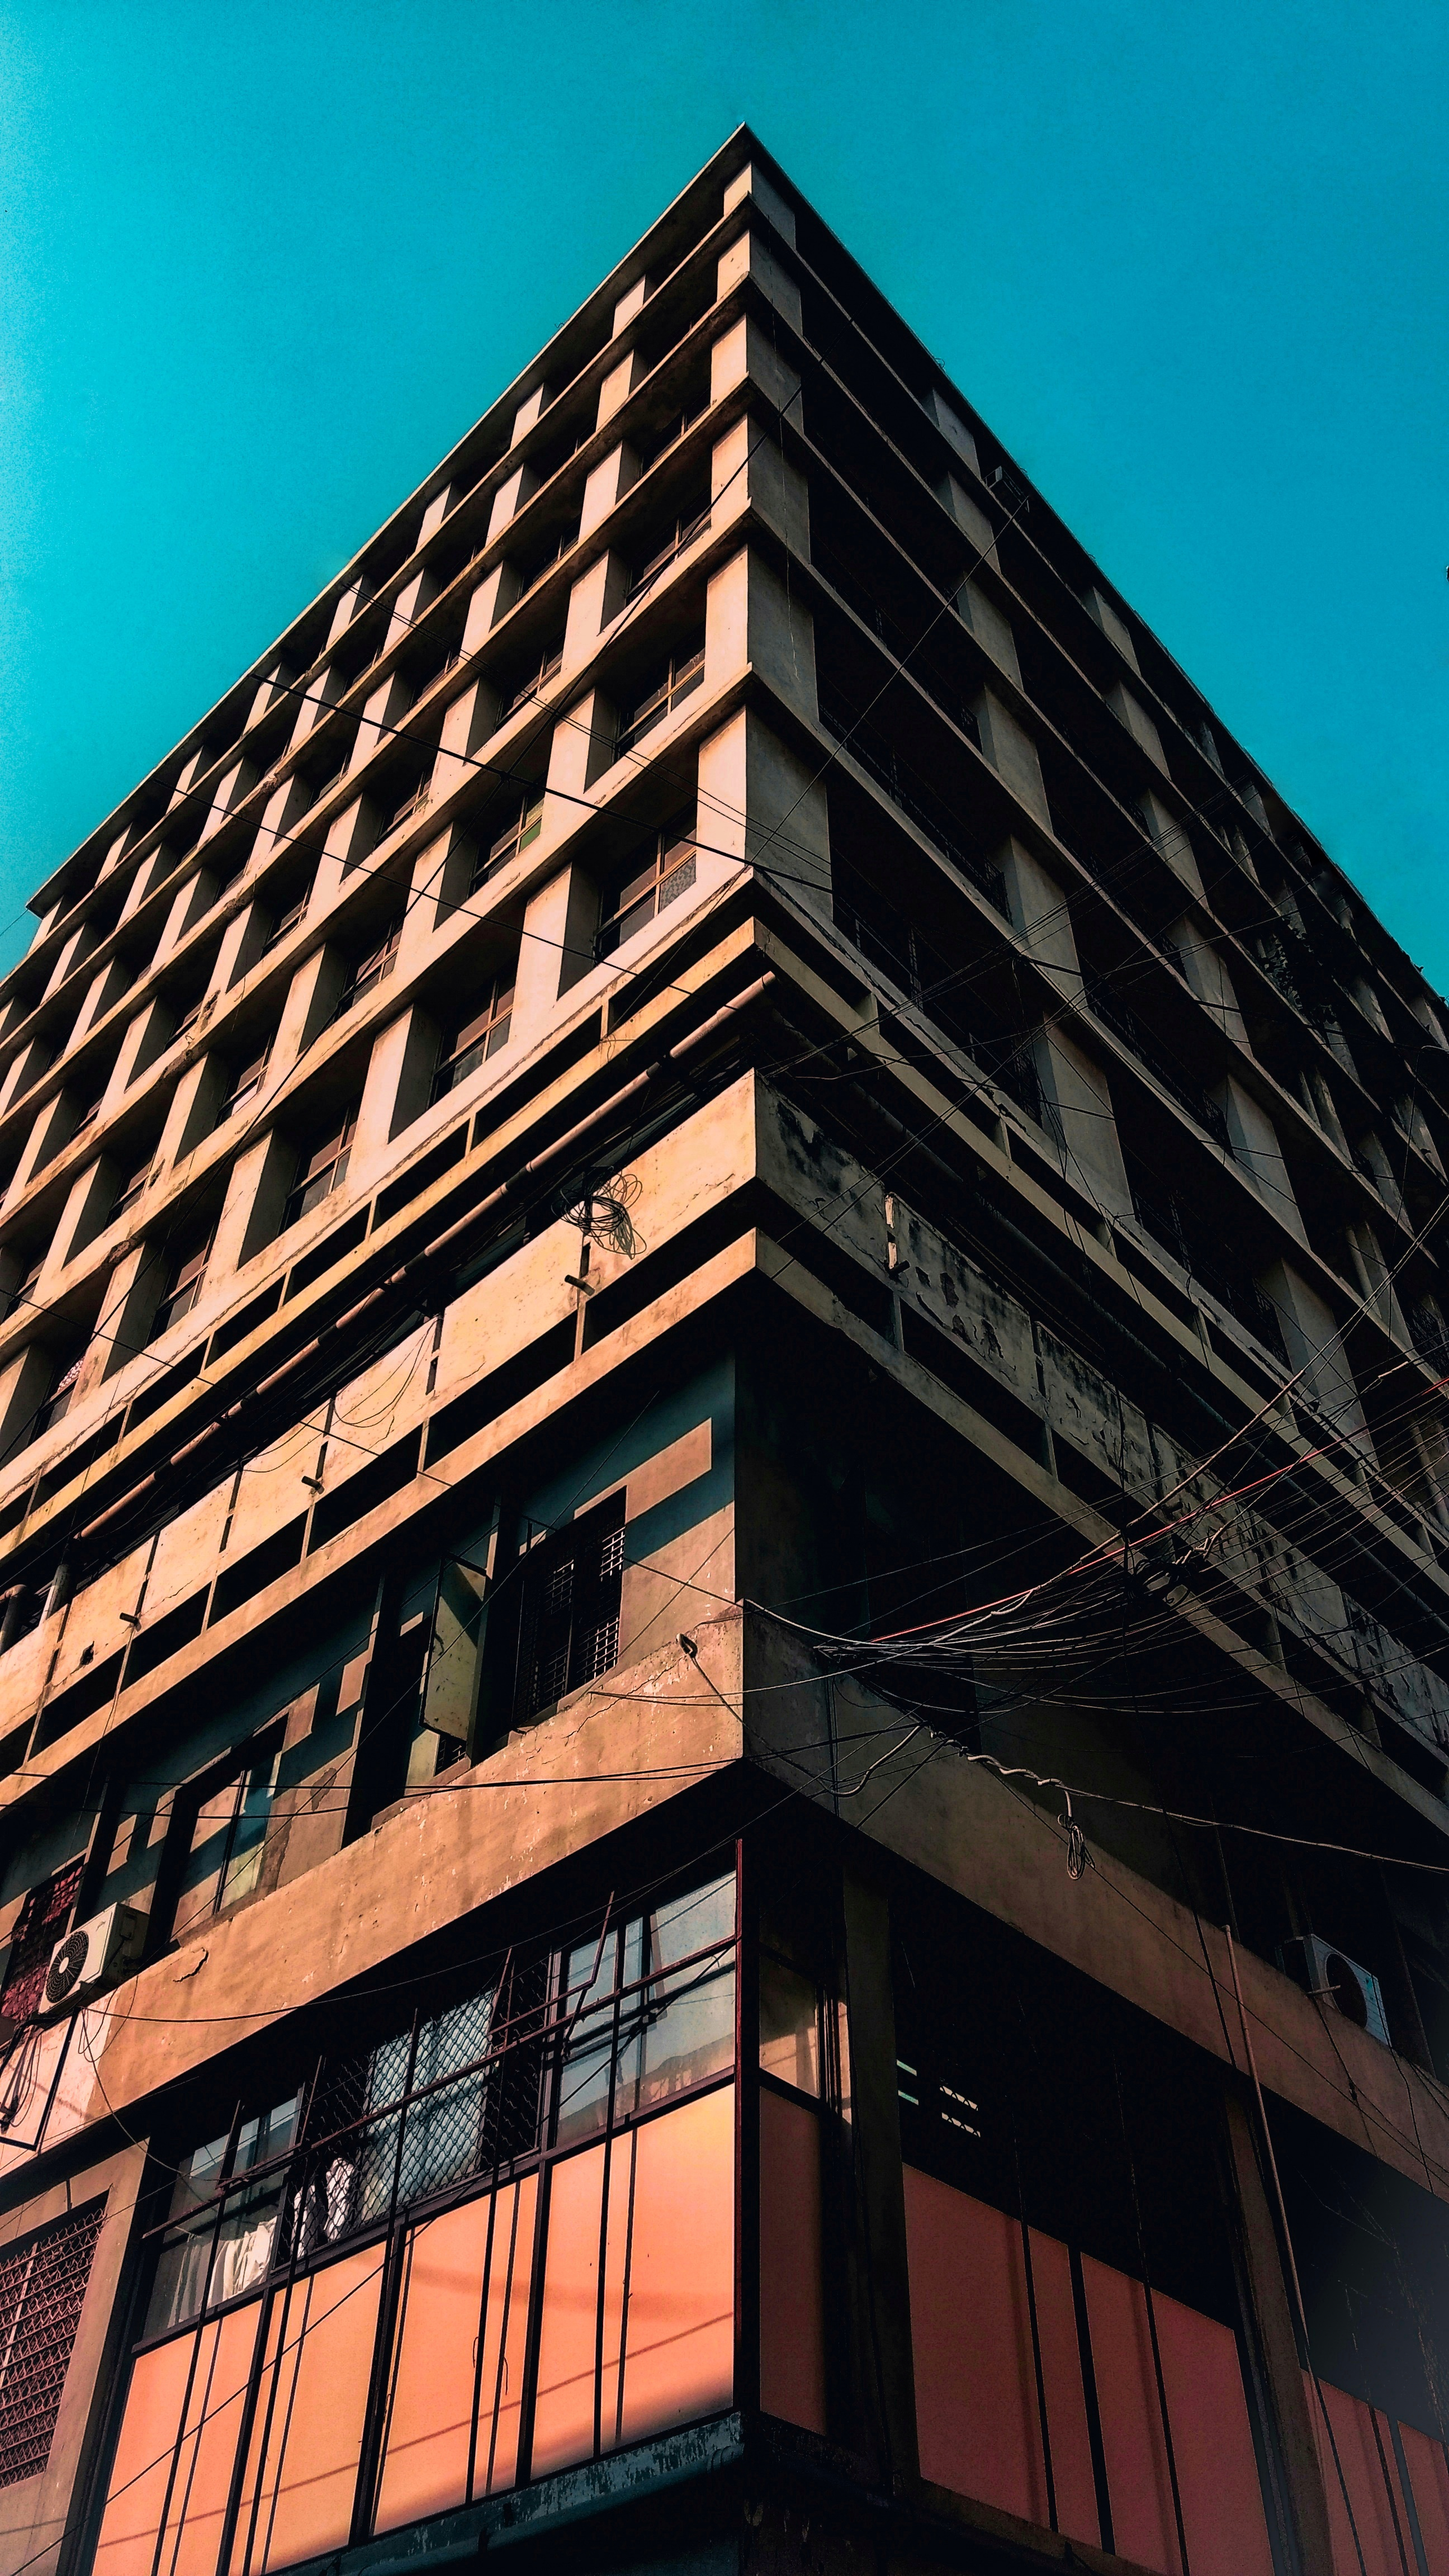 Low Angle Photography Of Building Free Stock Photo: Low Angle Photography Of Brown Concrete Building · Free